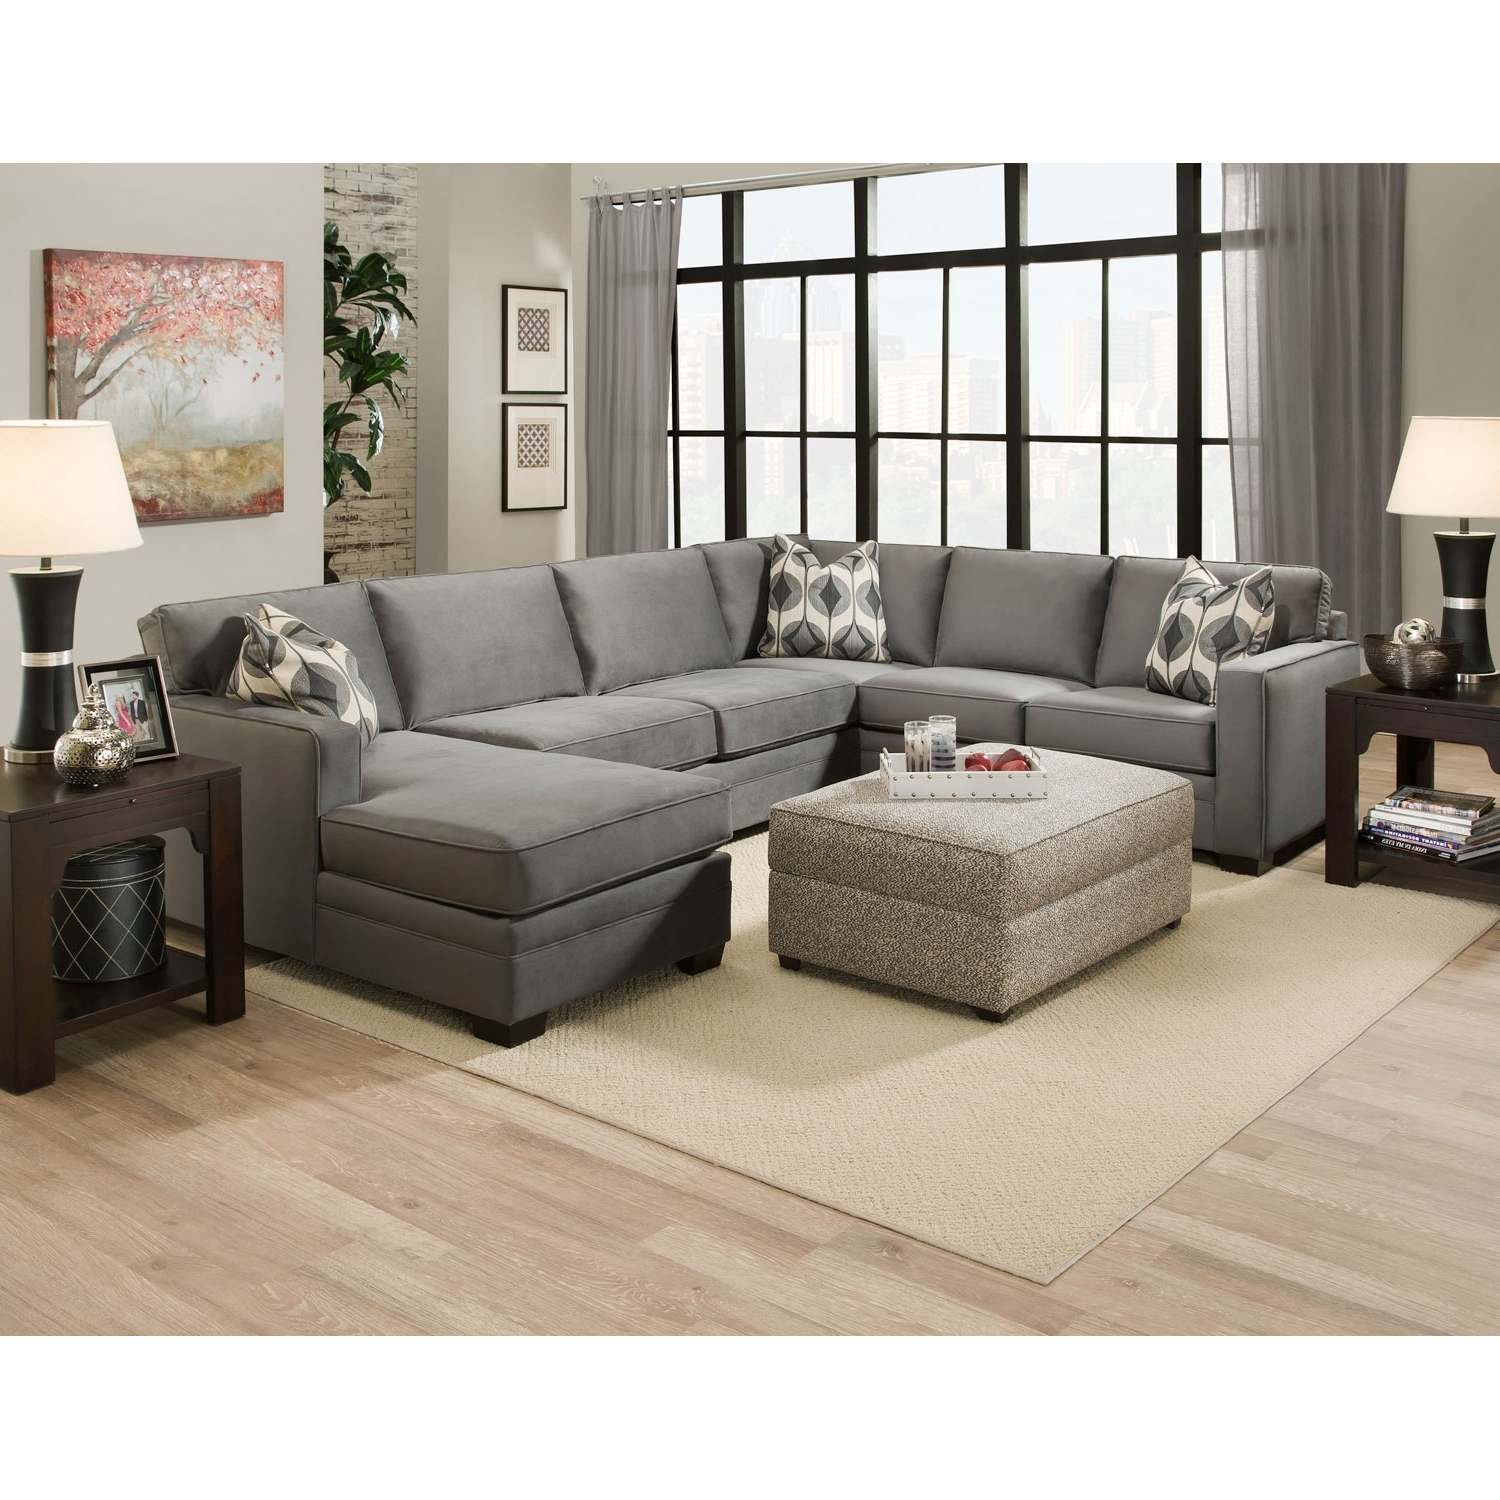 Preferred Gray Extra Large U Shaped Sectional Sofa With Chaise And Accent With Regard To Extra Large U Shaped Sectionals (View 3 of 15)